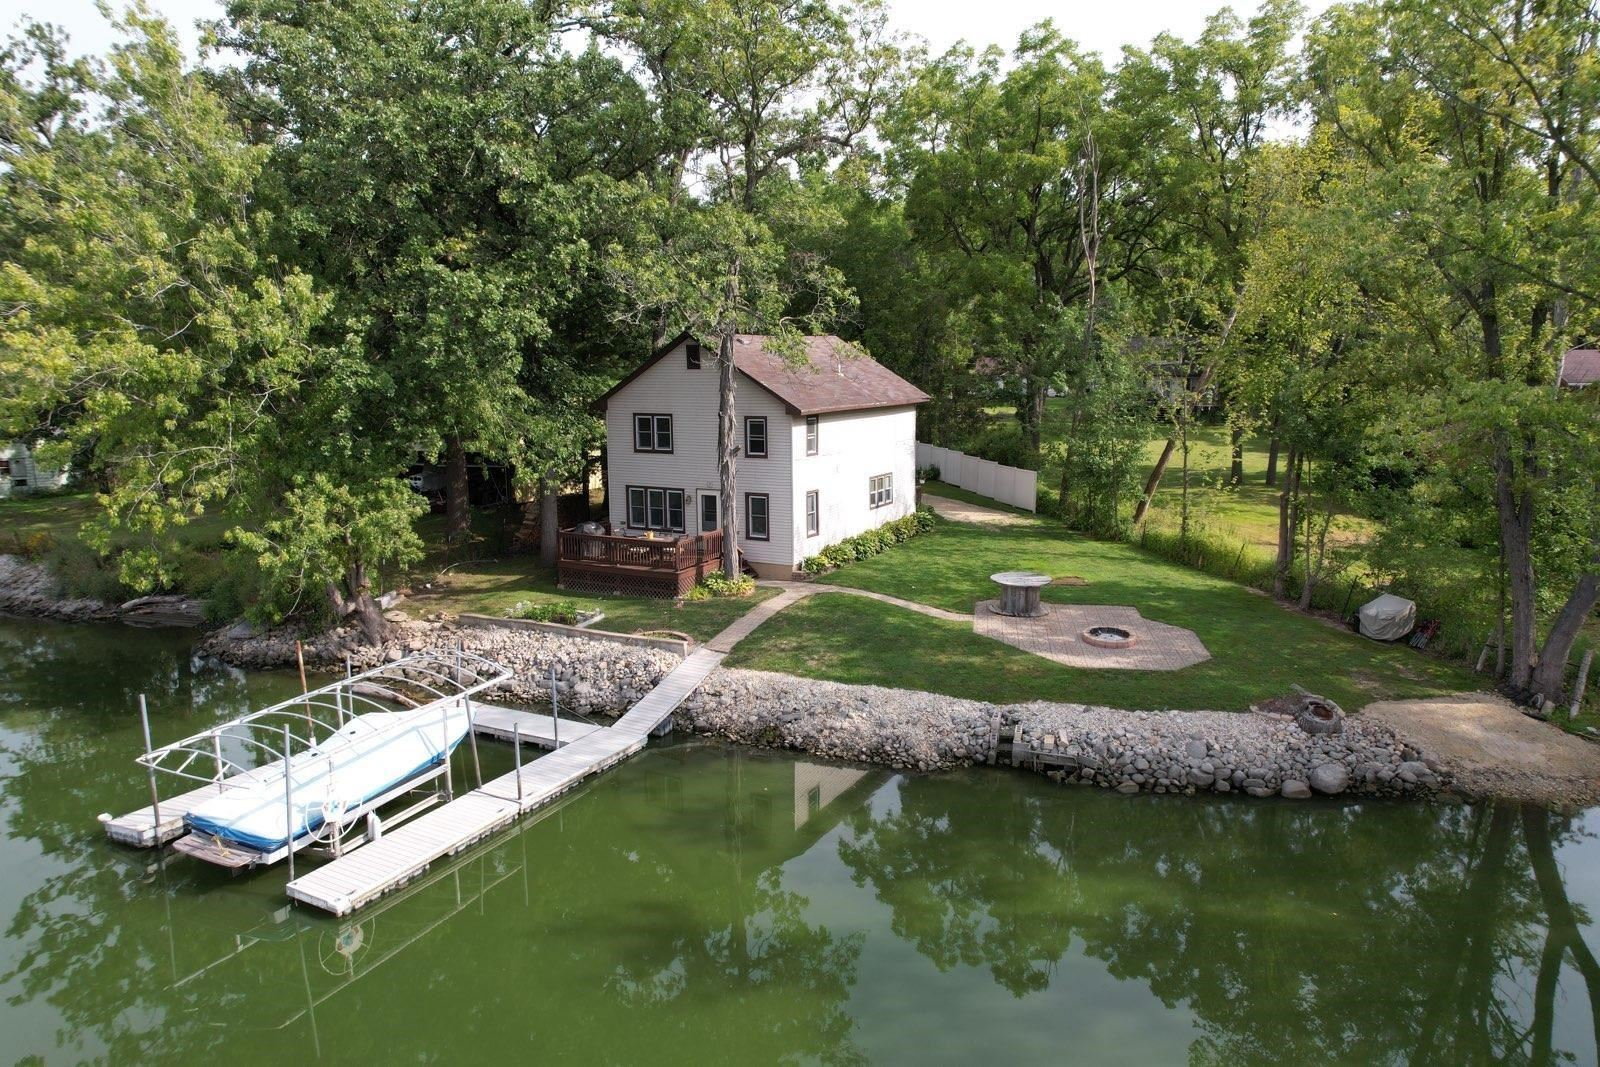 4647 N River Rd, Janesville, WI 53546 - #: 1918681